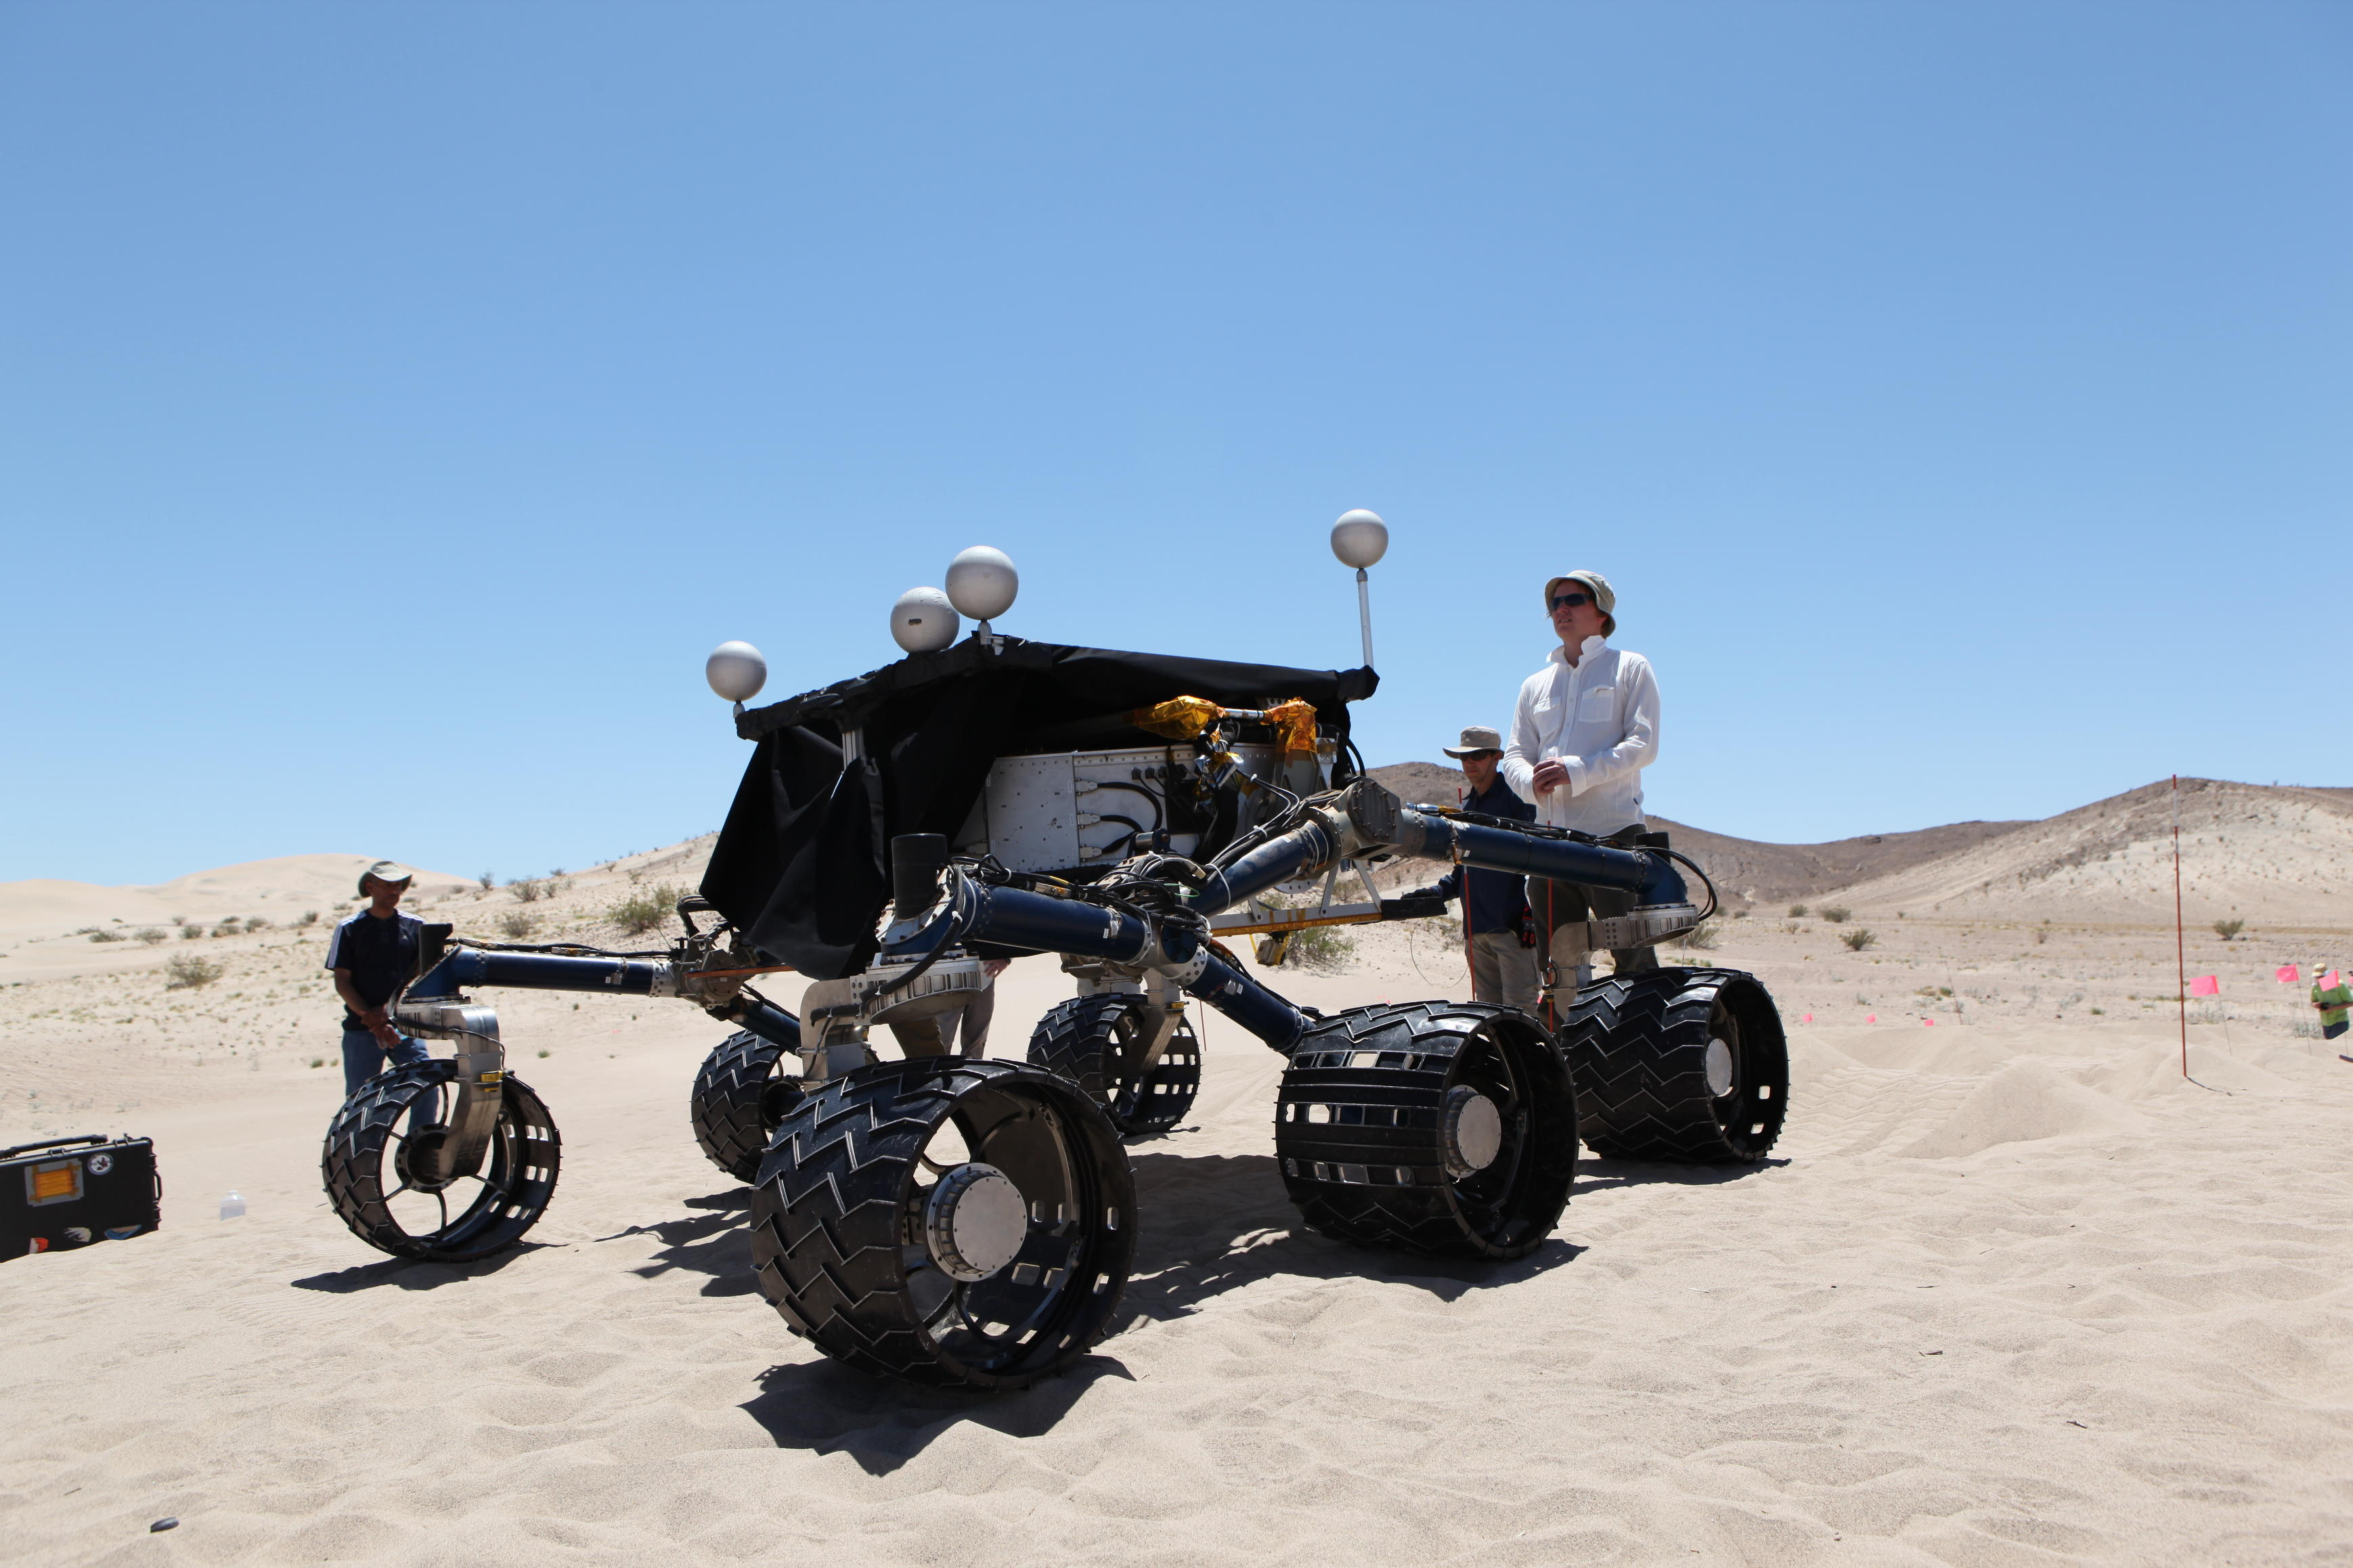 mars rover, desert, dune, test, Scarecrow - Waiting on the sand for its test drive to support Mars rover Curiosity is the car-size Scarecrow rover.